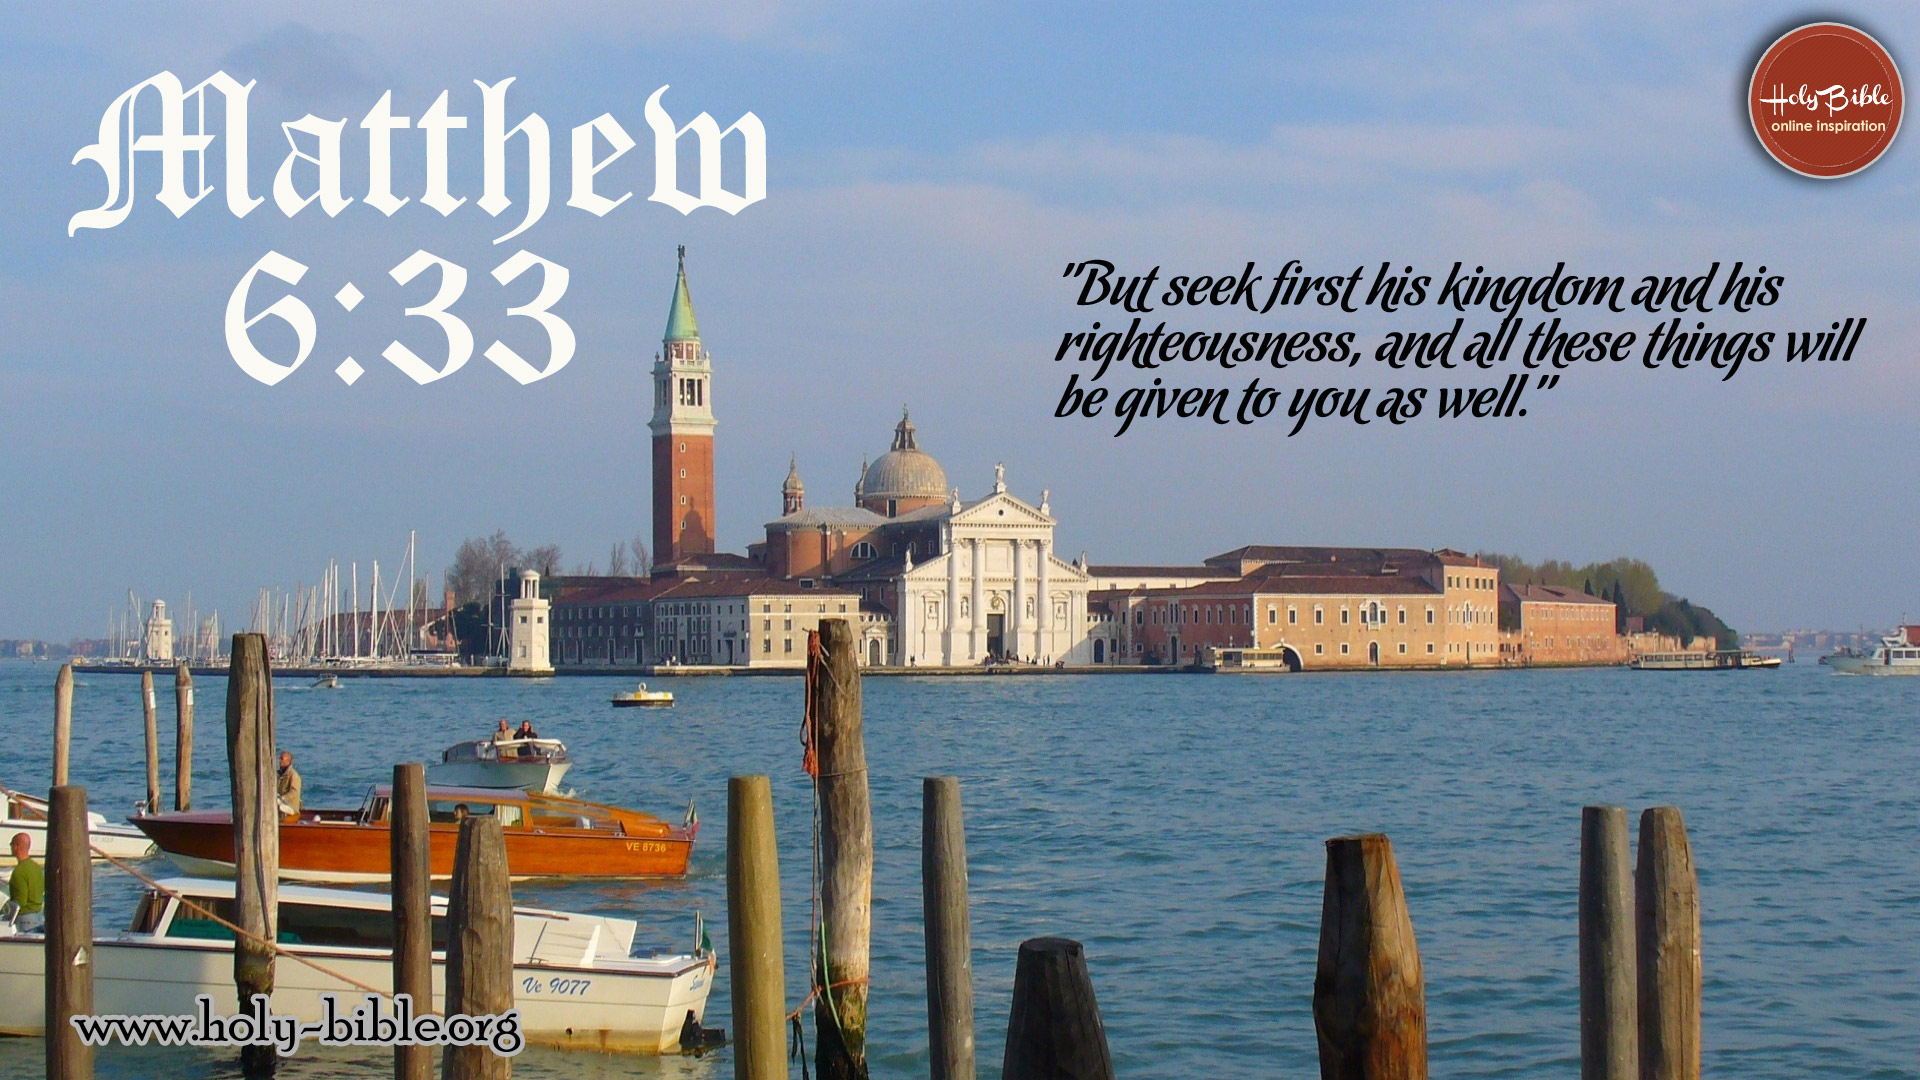 Captivating Bible Verse Of The Day U2013 Matthew 6:33